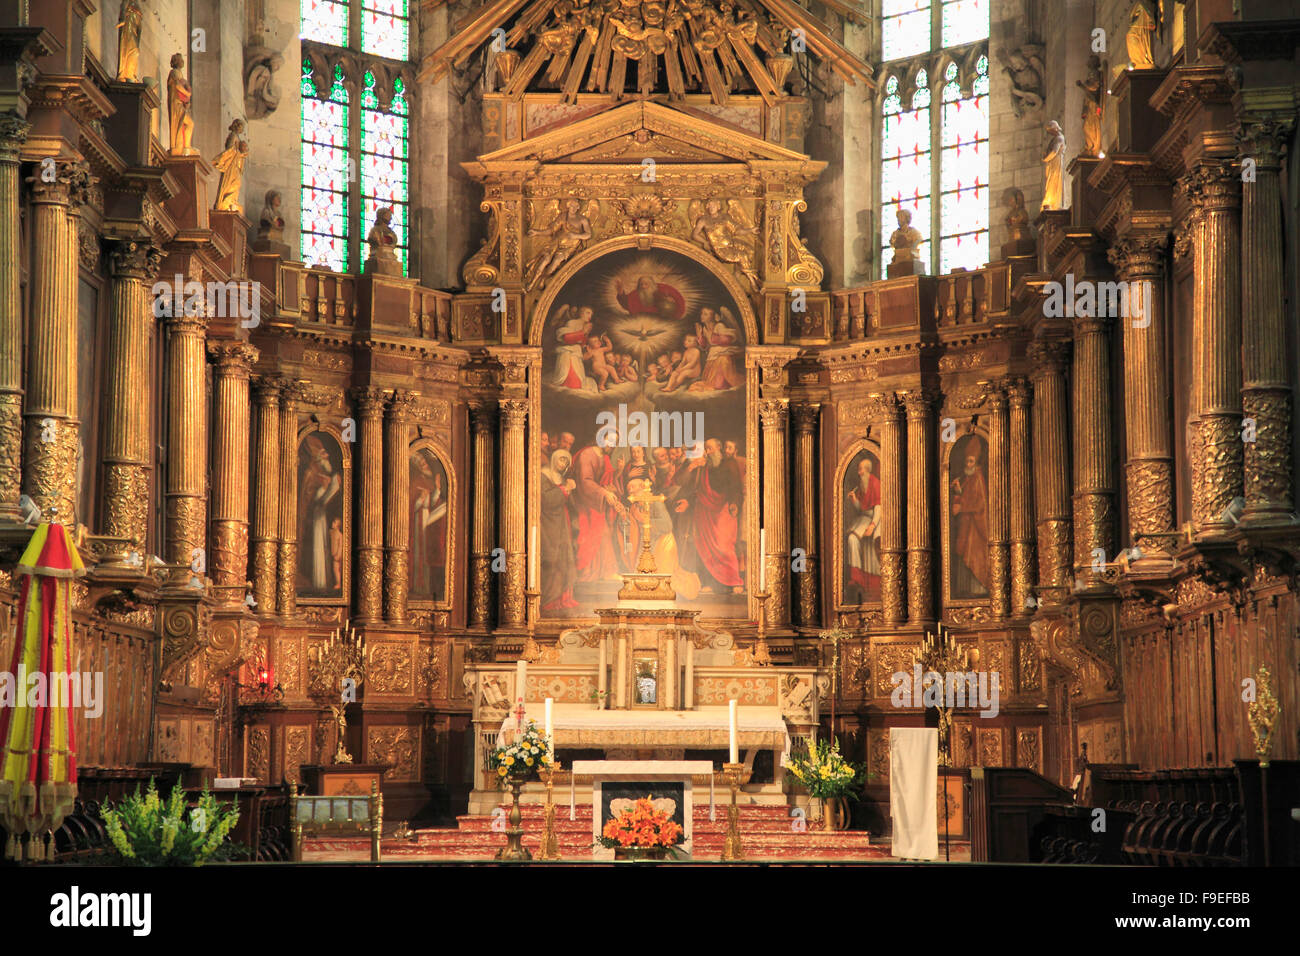 France Provence Avignon Église St-Pierre church interior - Stock Image